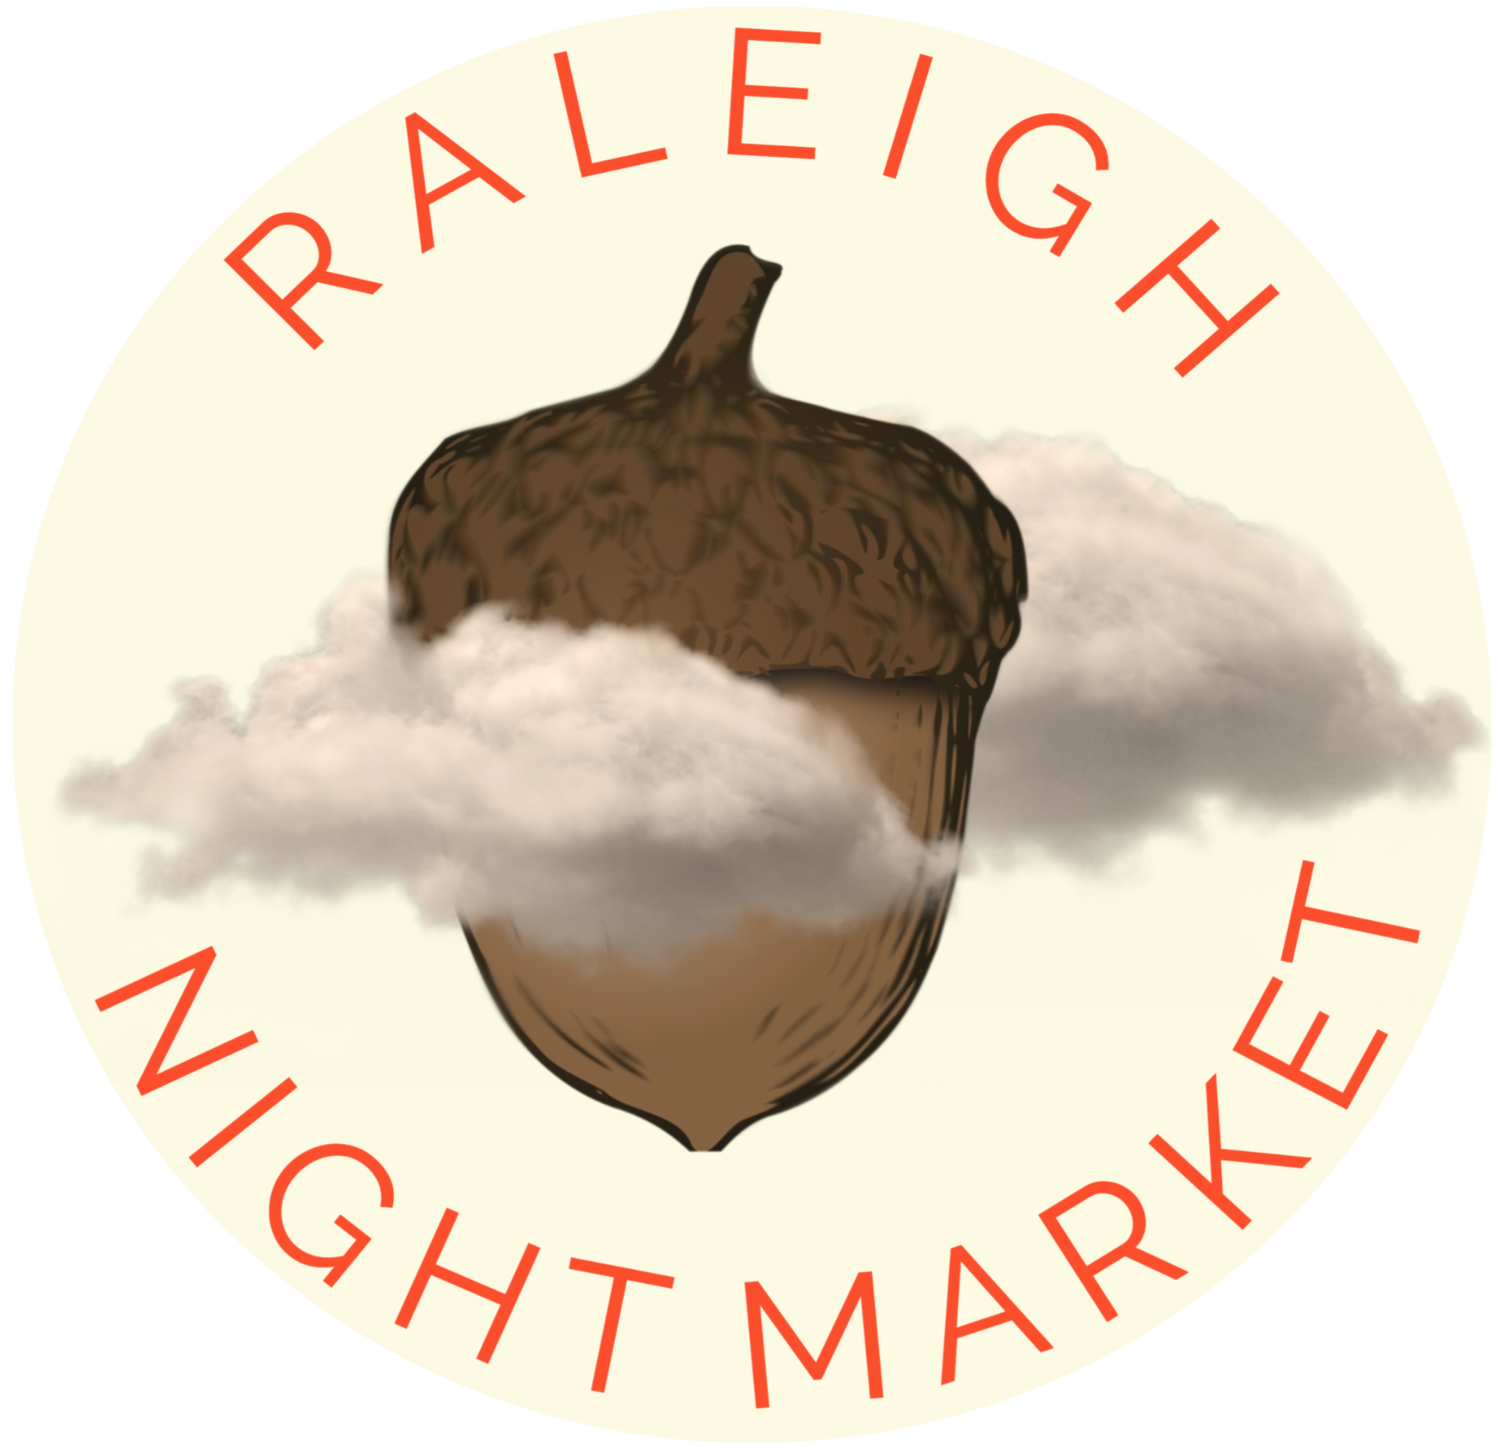 The Raleigh Night Market